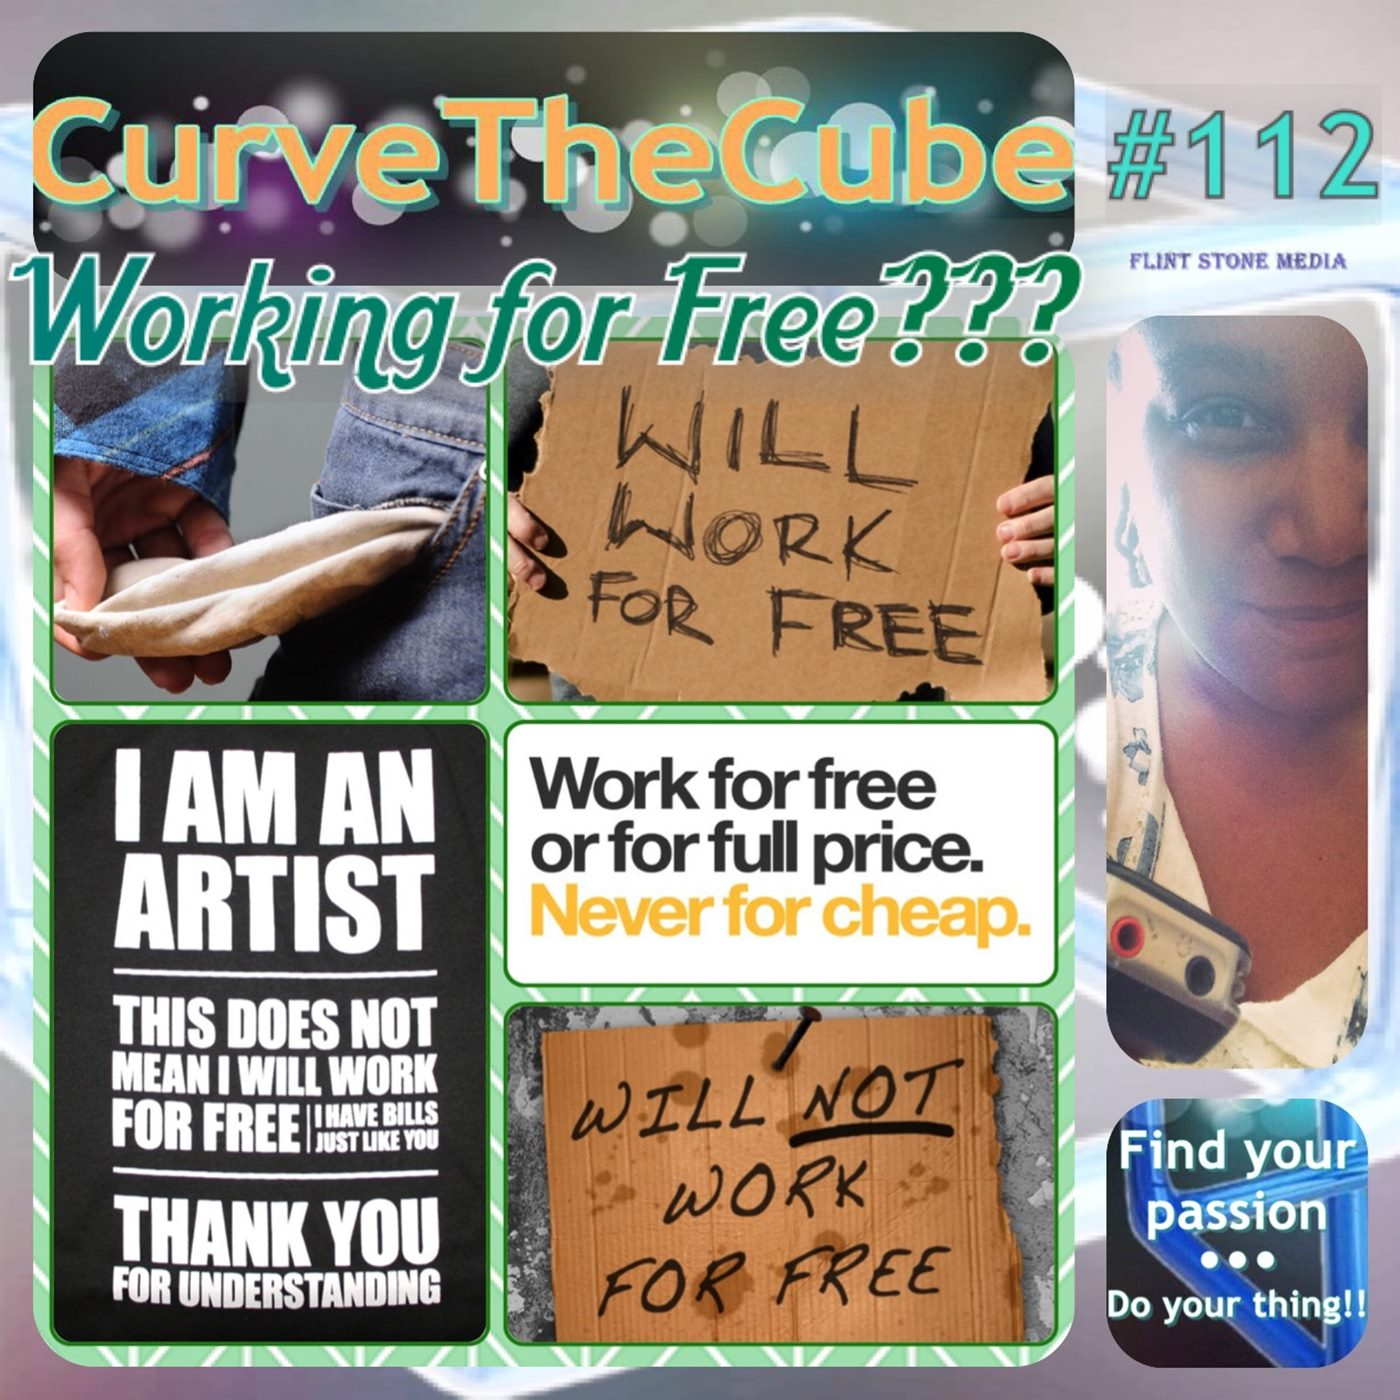 Curve the Cube Solocast with Host Jaime Legagneur About Working for Free